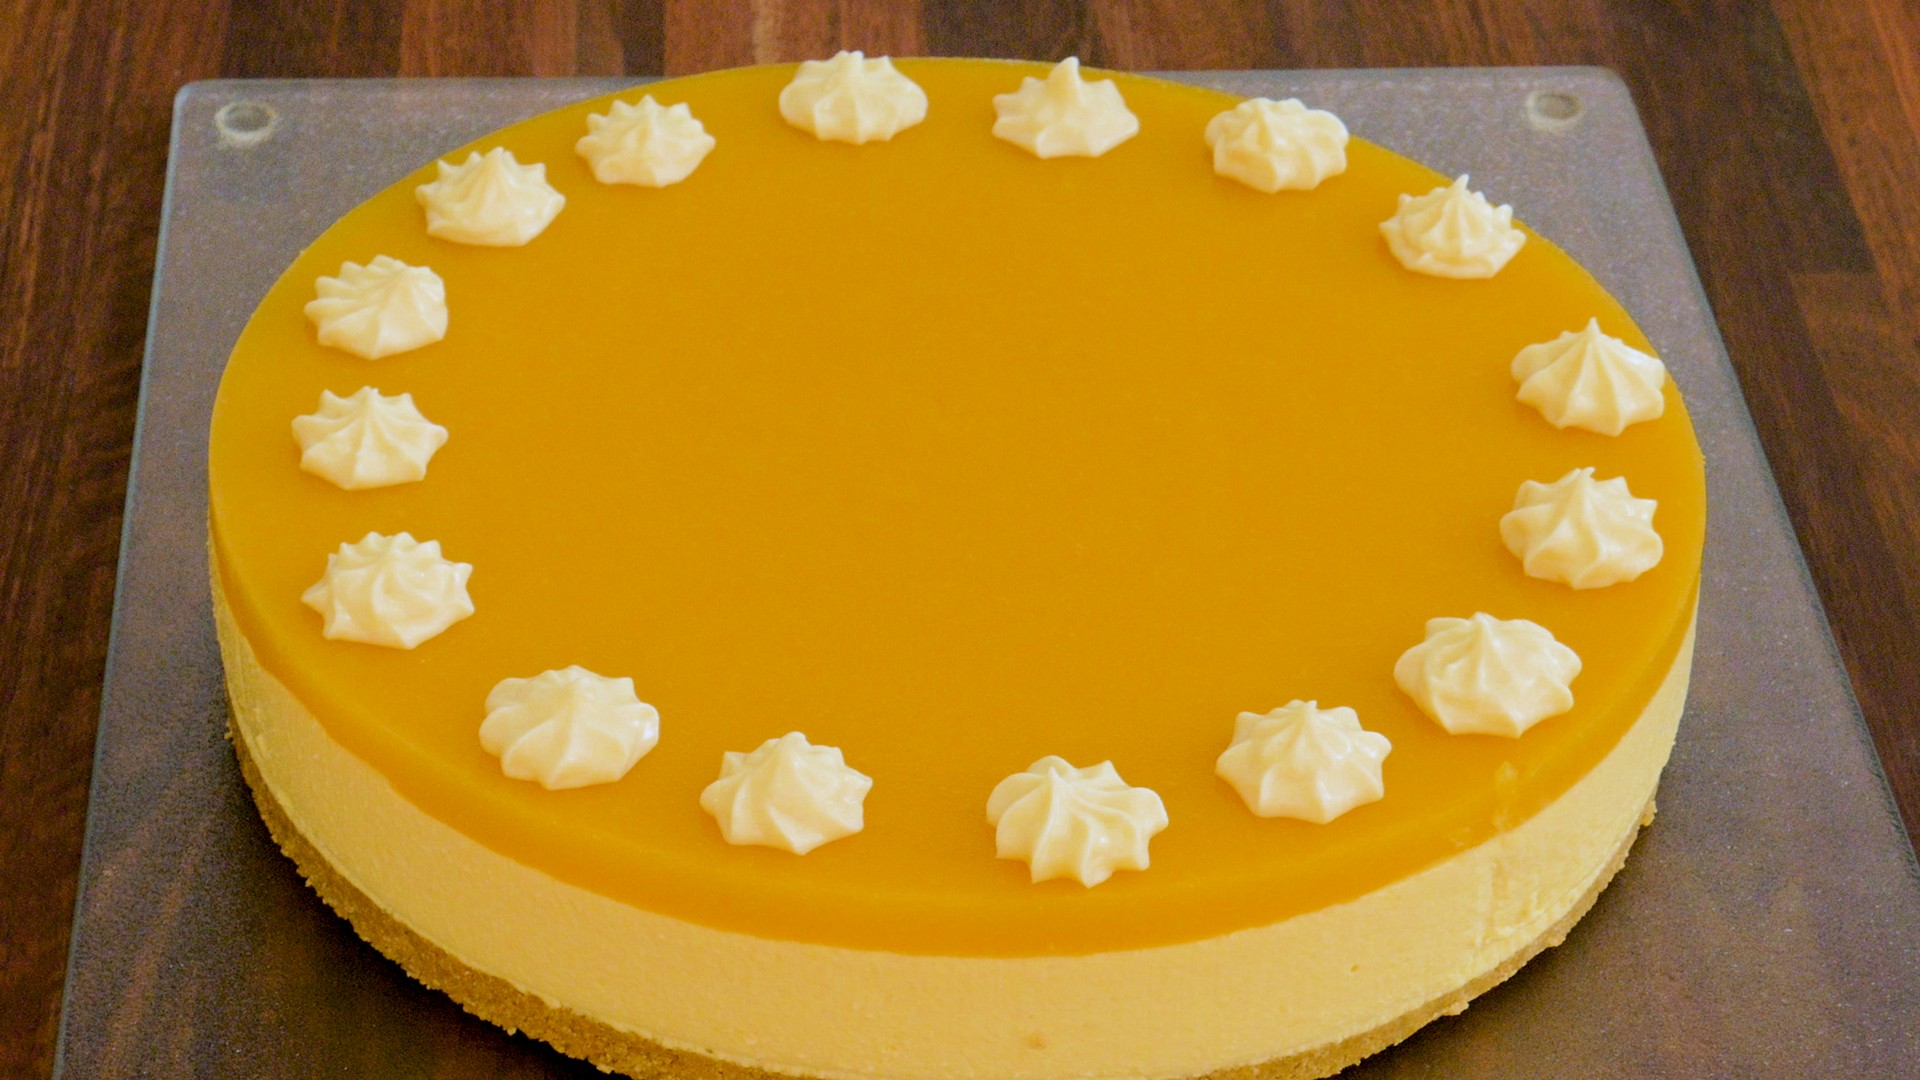 No-Bake Mango Cheesecake Pic 8